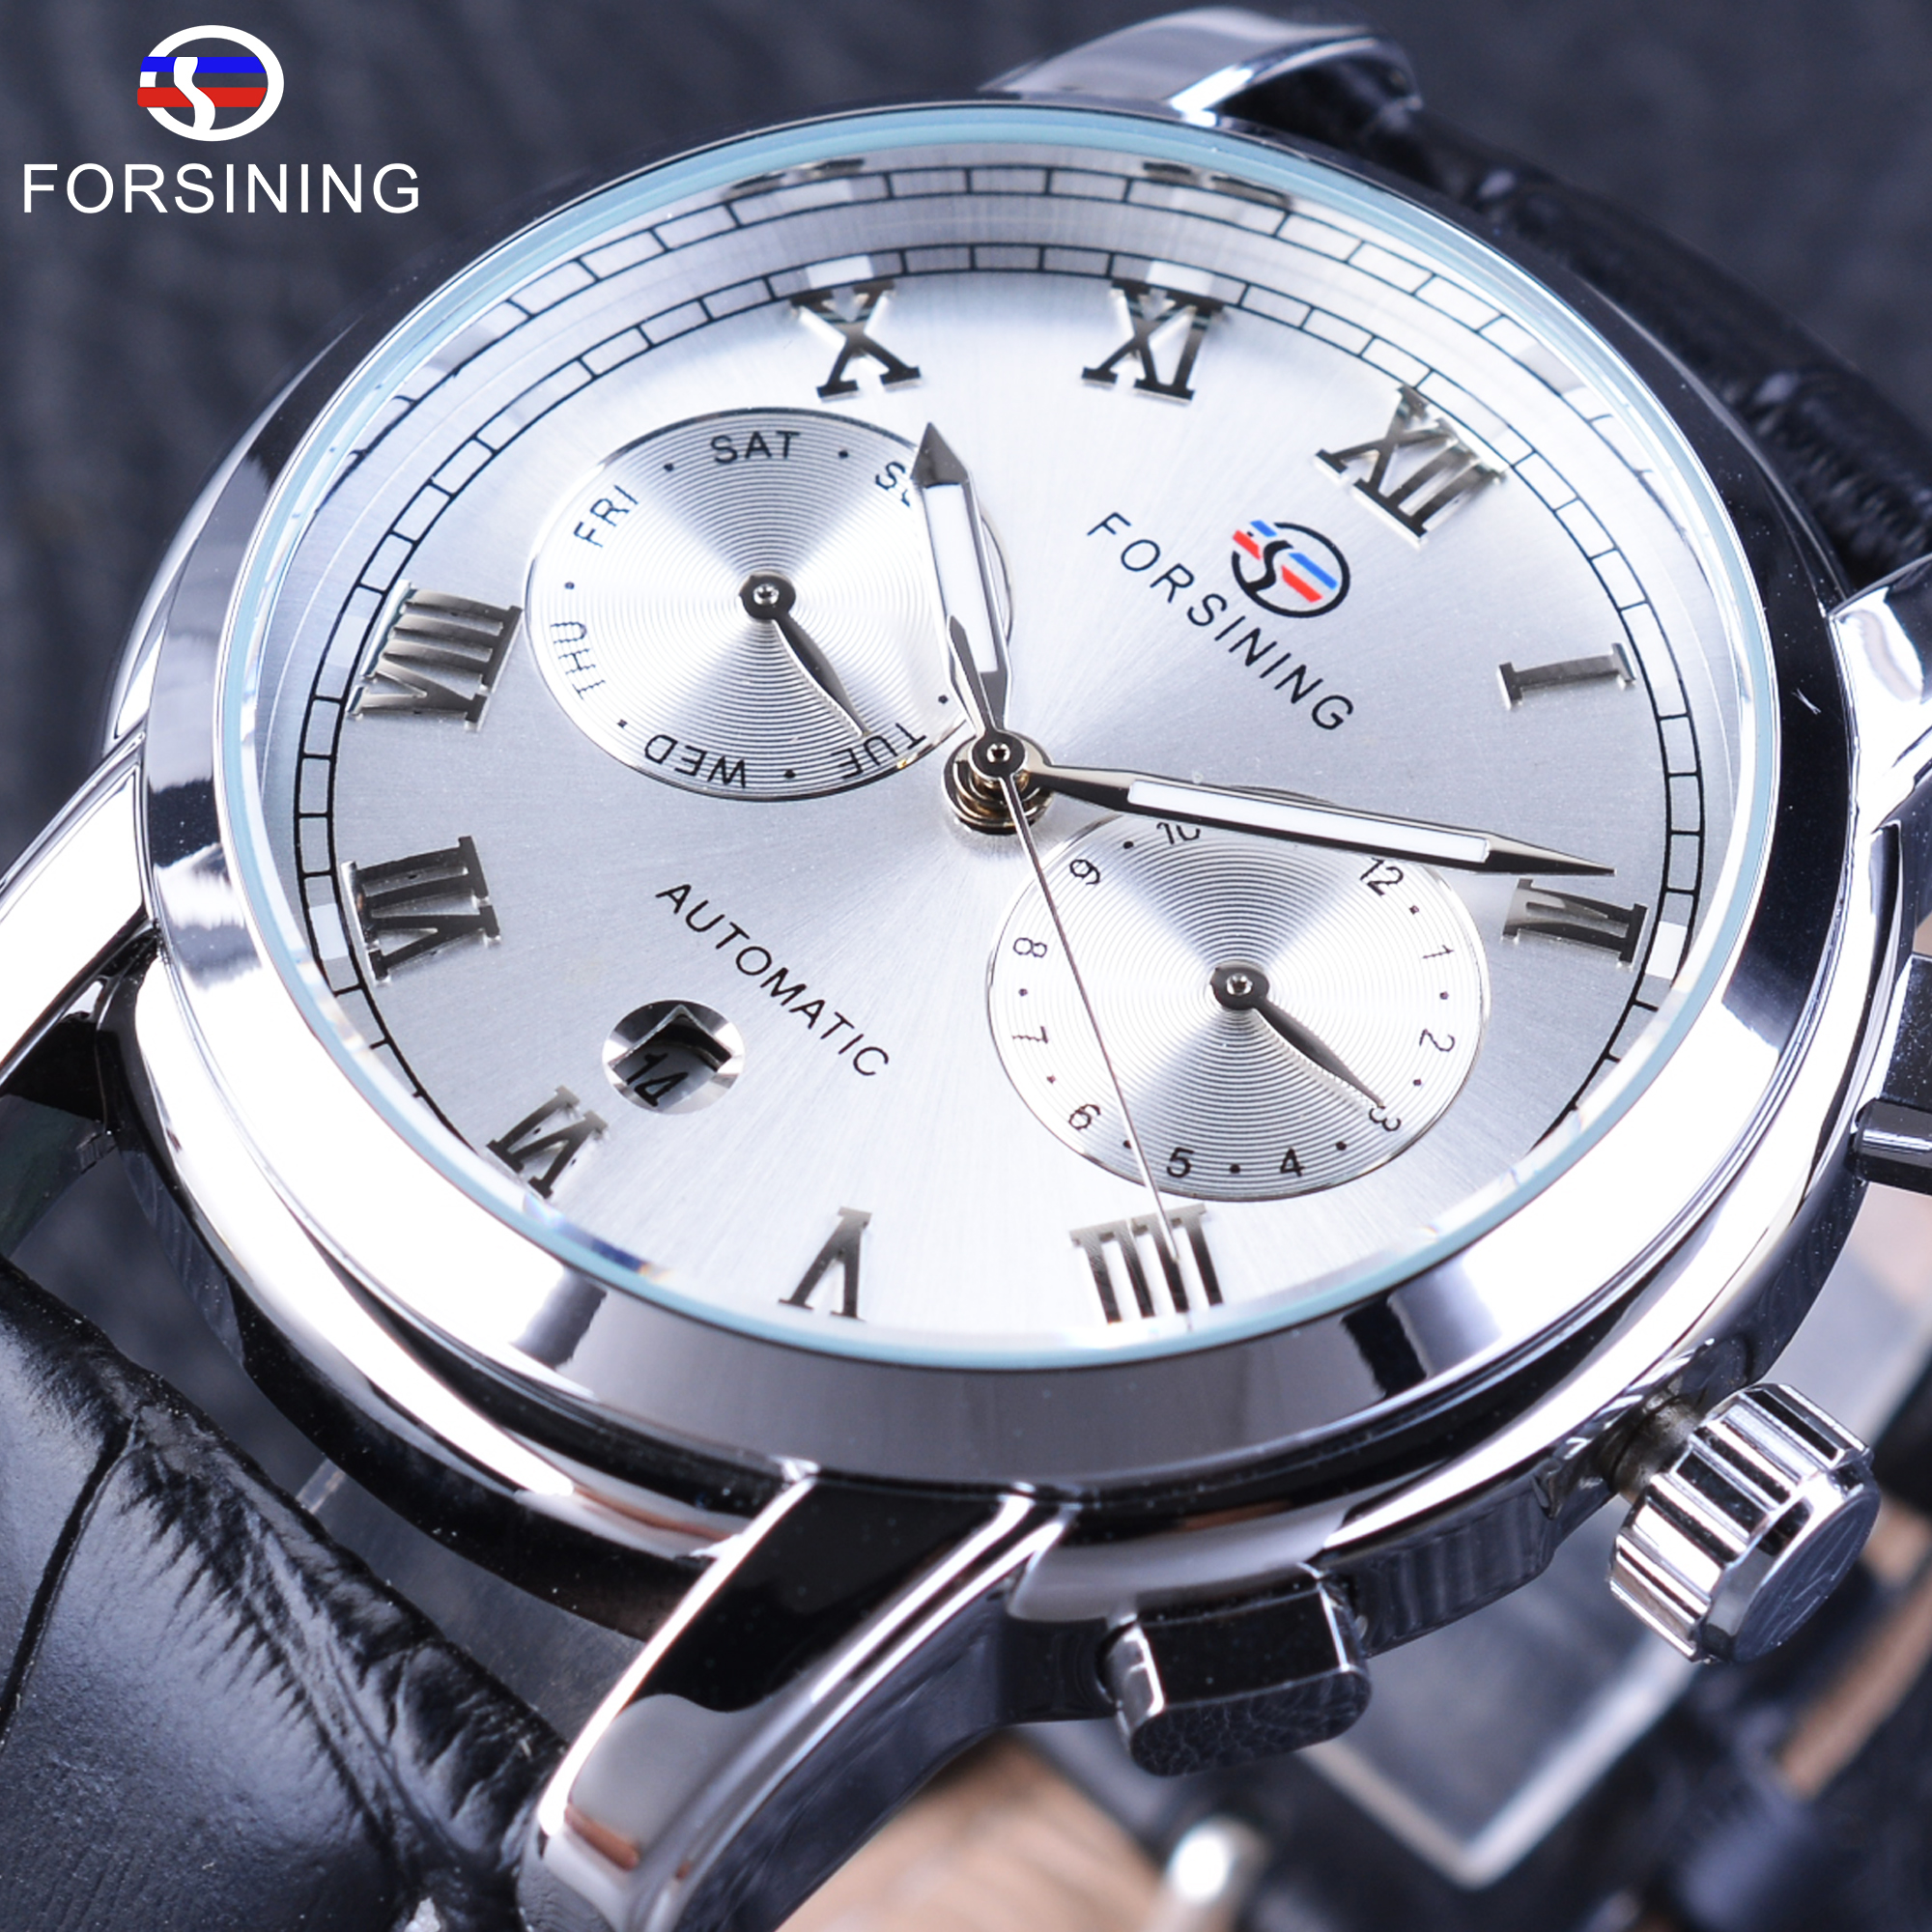 Forsining Men's Mechanical Watches Complete Calendar Display Black Genuine Leather Strap Top Brand Luxury Watch Male Clock forsining classic series black genuine leather strap 3 dial 6 hands men watch top brand luxury automatic mechanical watch clock